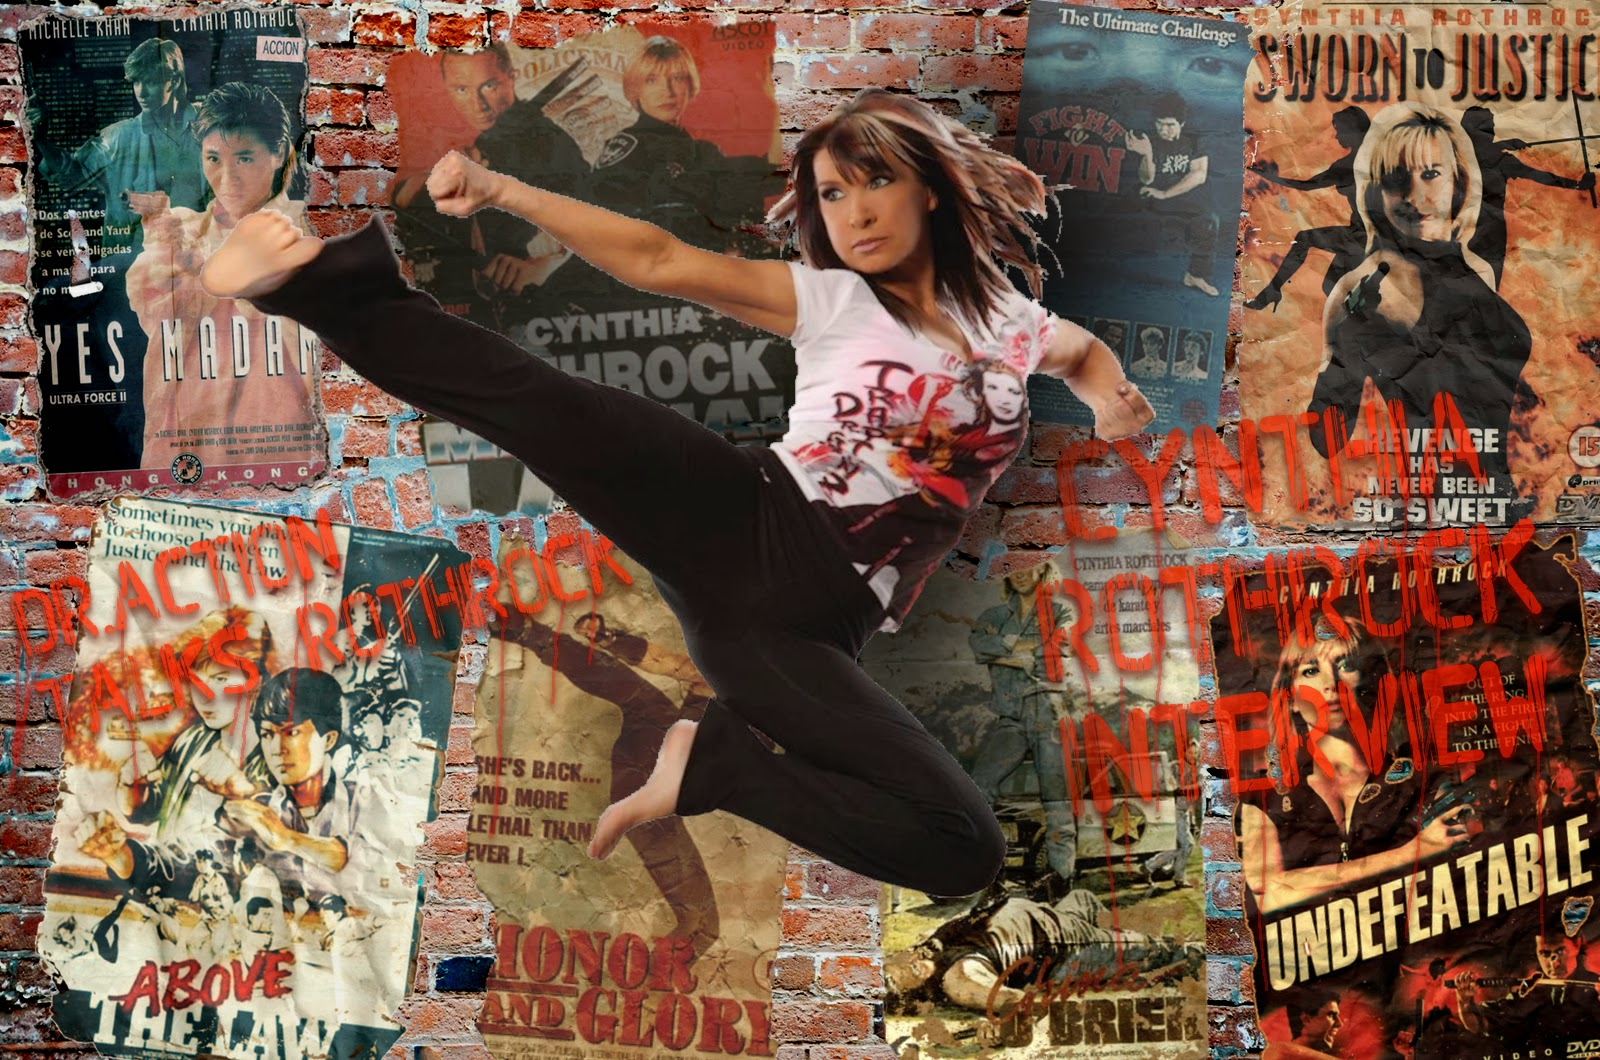 Cynthia Rothrock Undefeatable Episode 114 Cynthia Rothrock